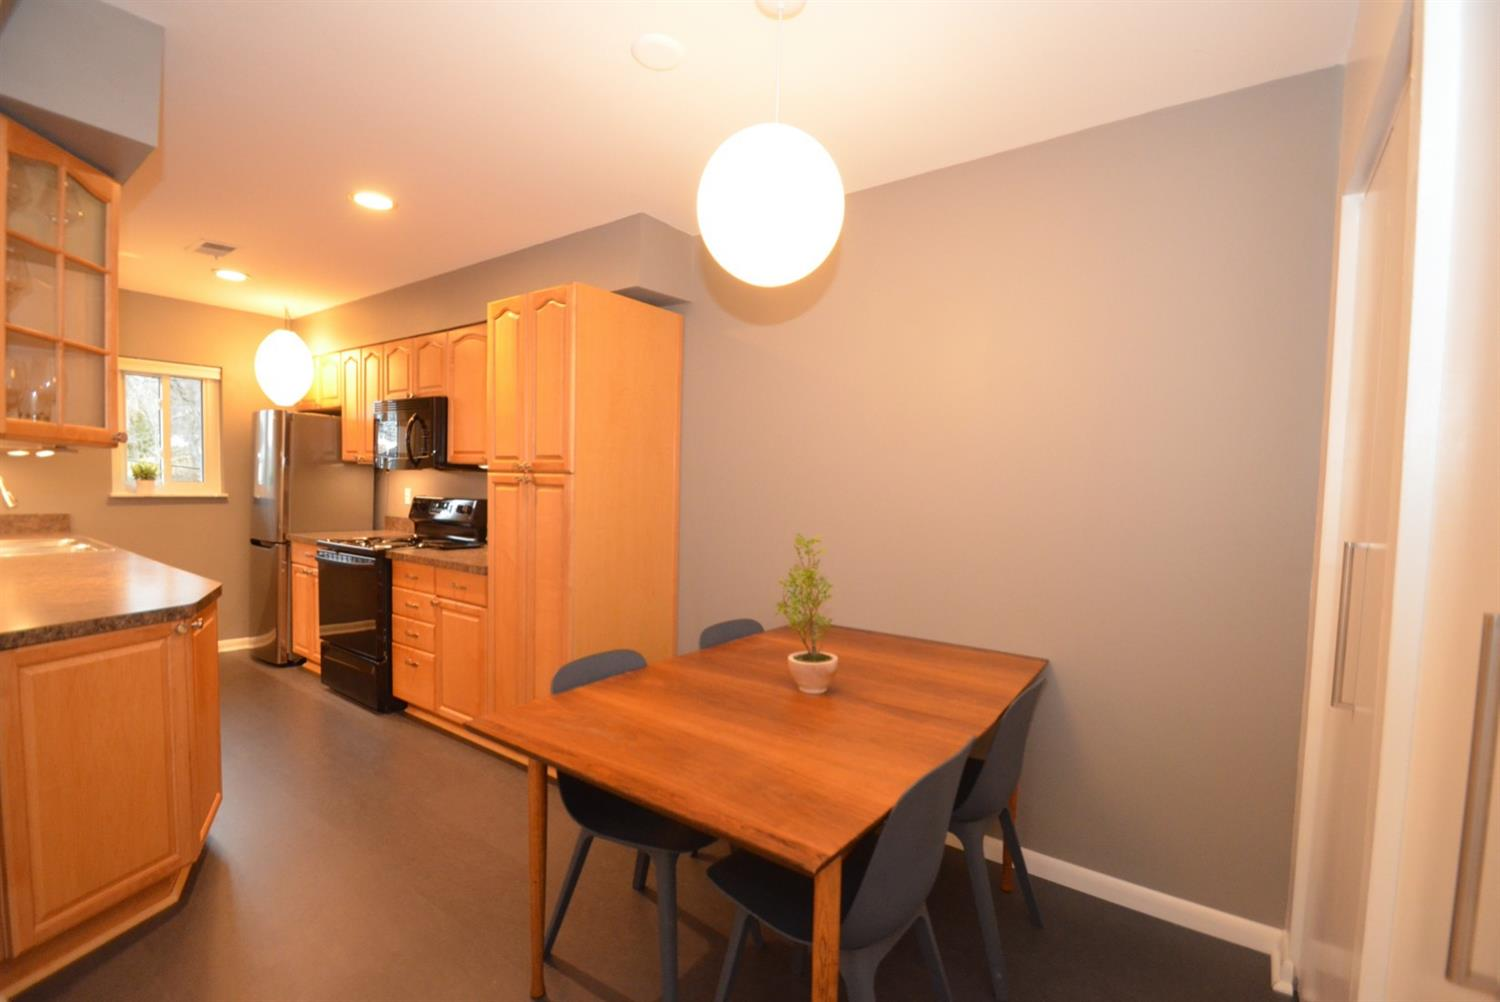 Really nice sized kitchen with plenty of counter and storage space!